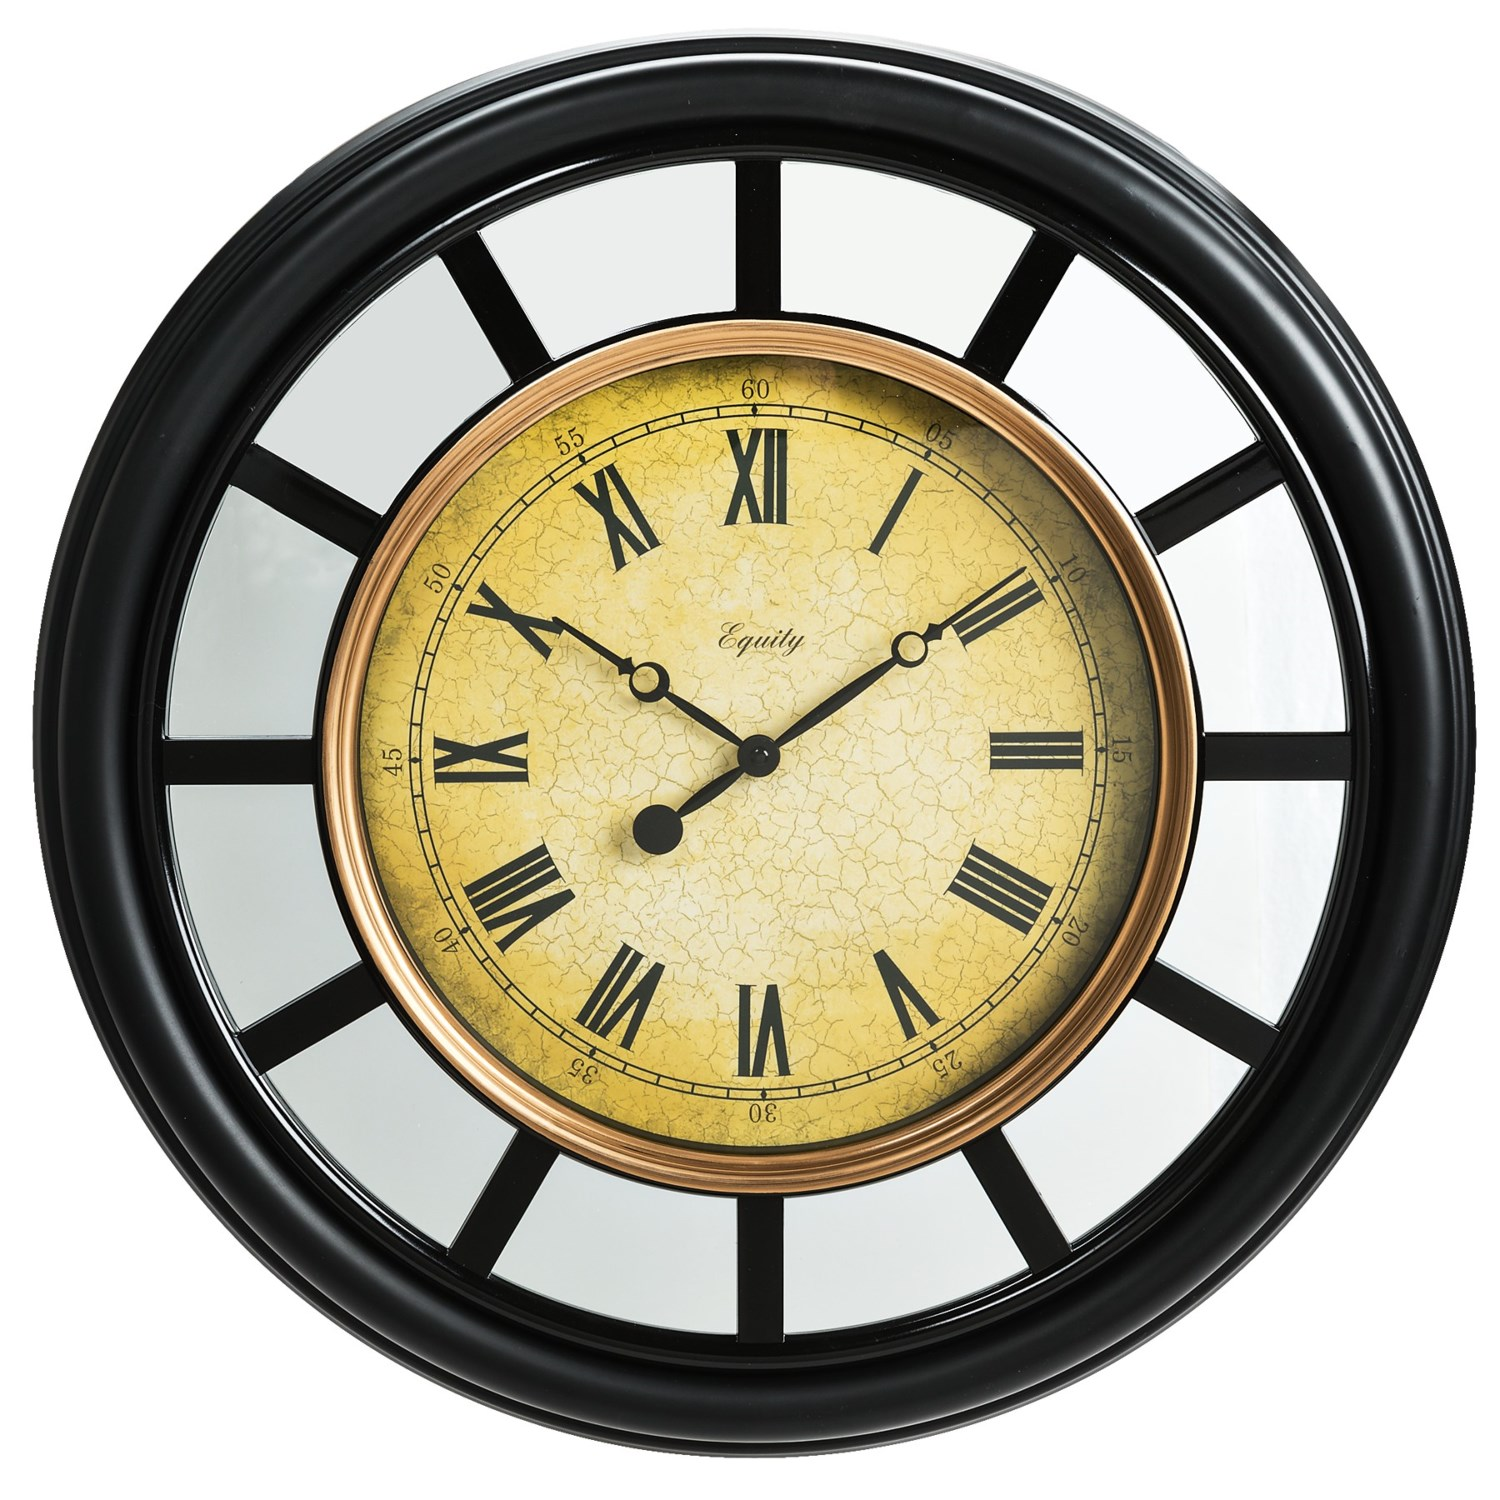 Equity by la crosse technology 22 mirror clock 7303t for Mirror of equity